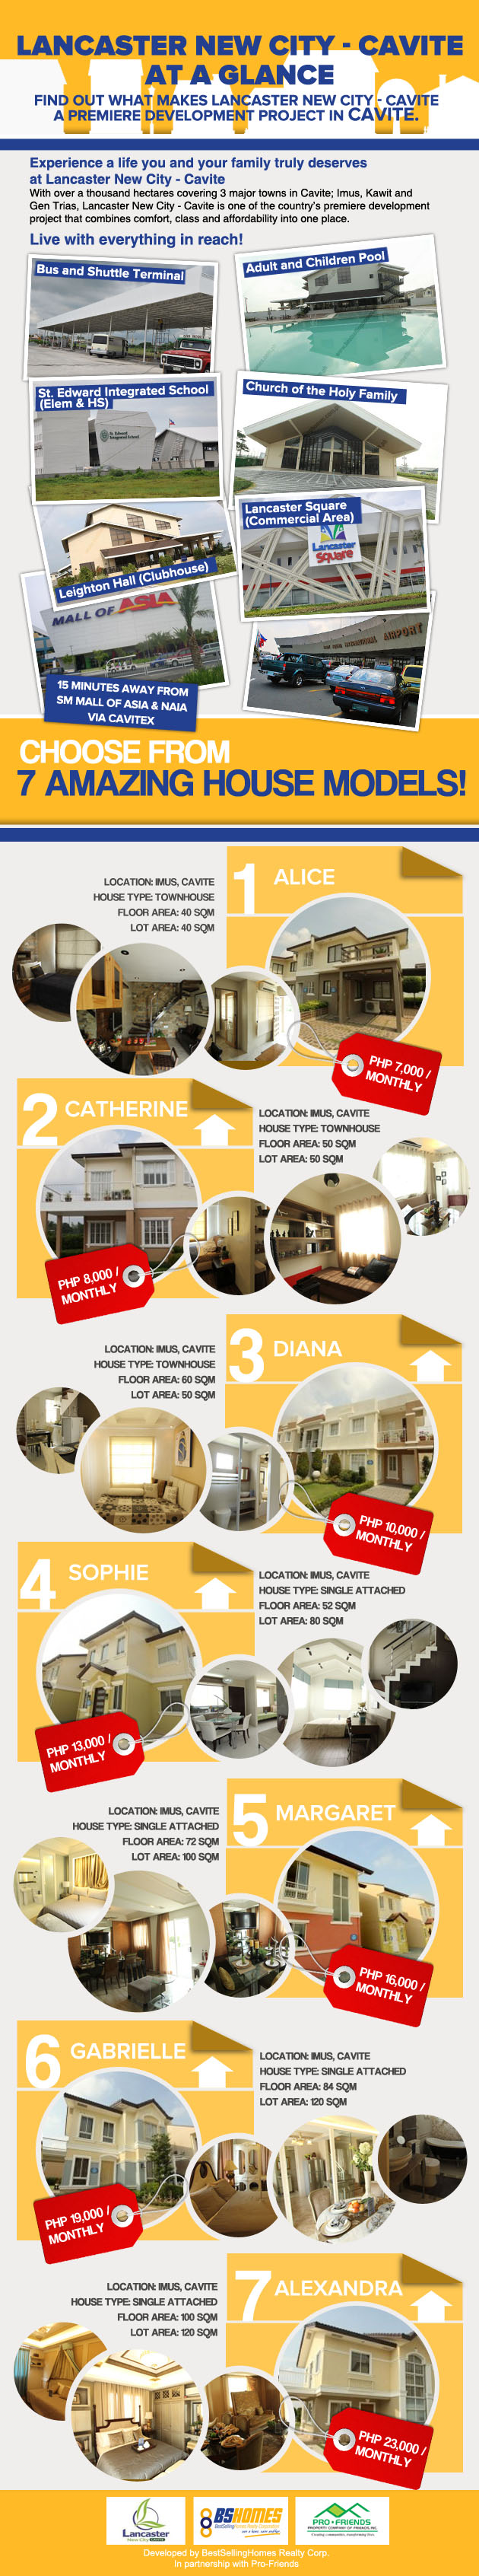 Lancaster New City _Final infographic_as of jul31